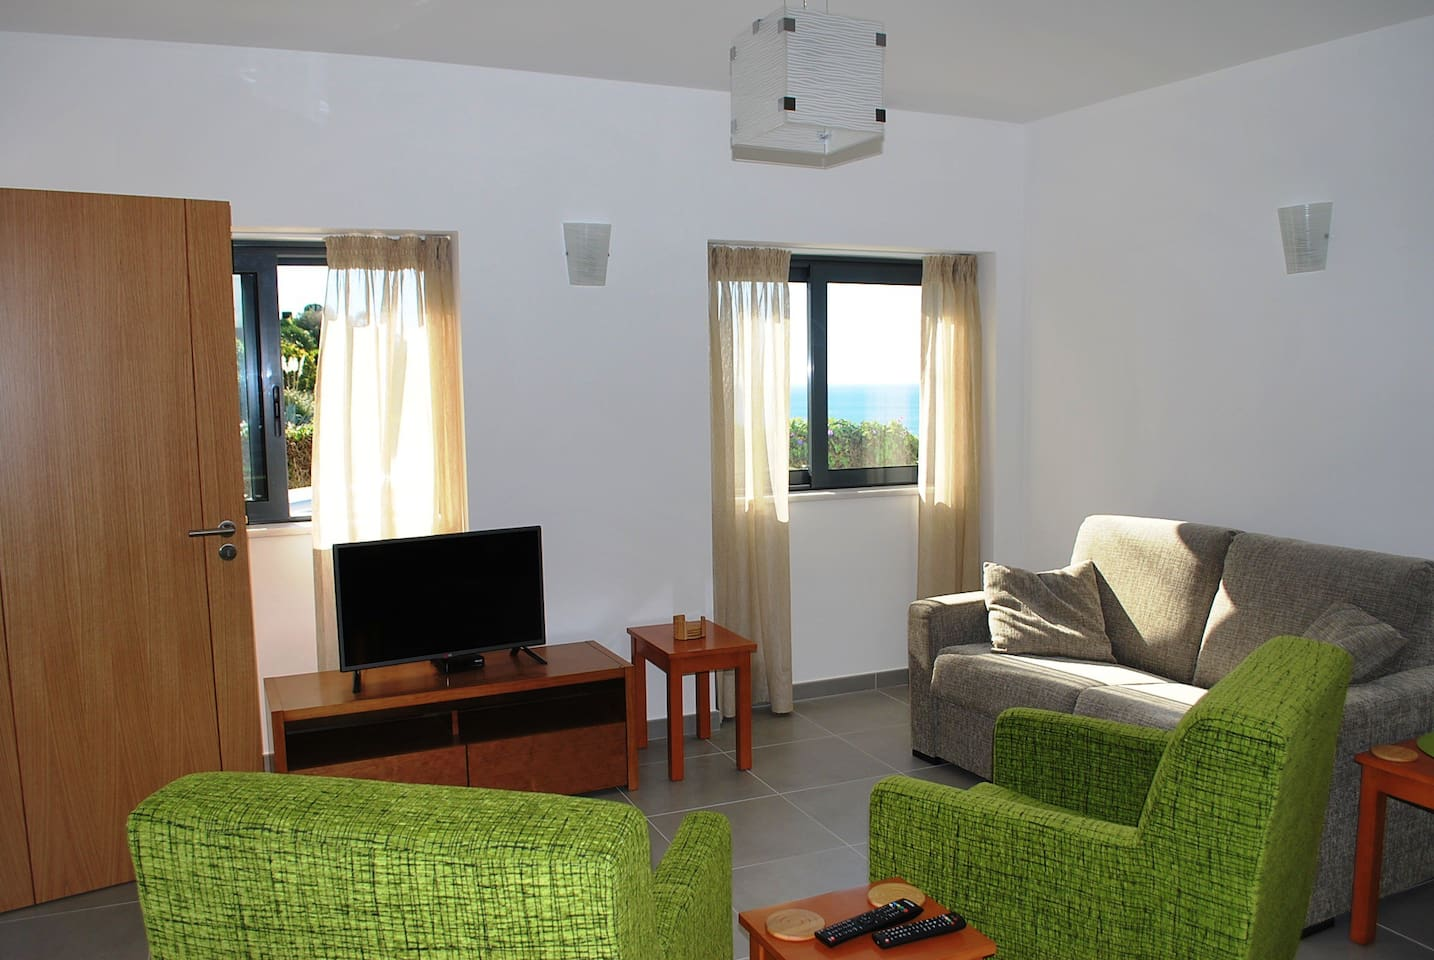 Lounge area with double bed settee, flat screen tv with Uk channels and wifi.